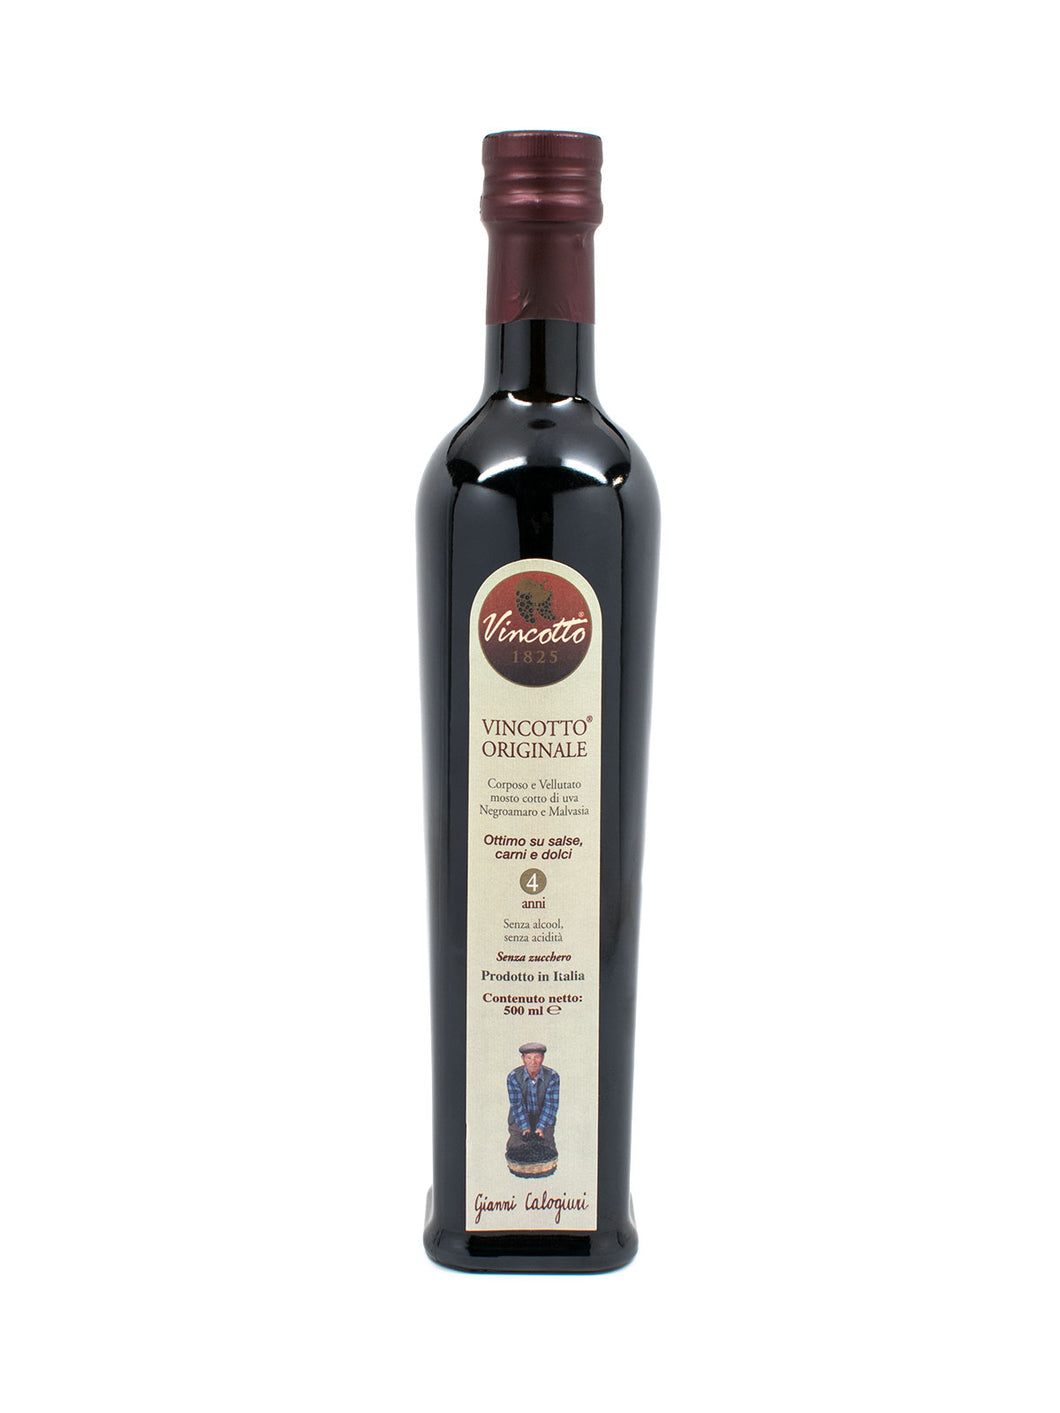 Vincotto Original 4 years aged 500ml